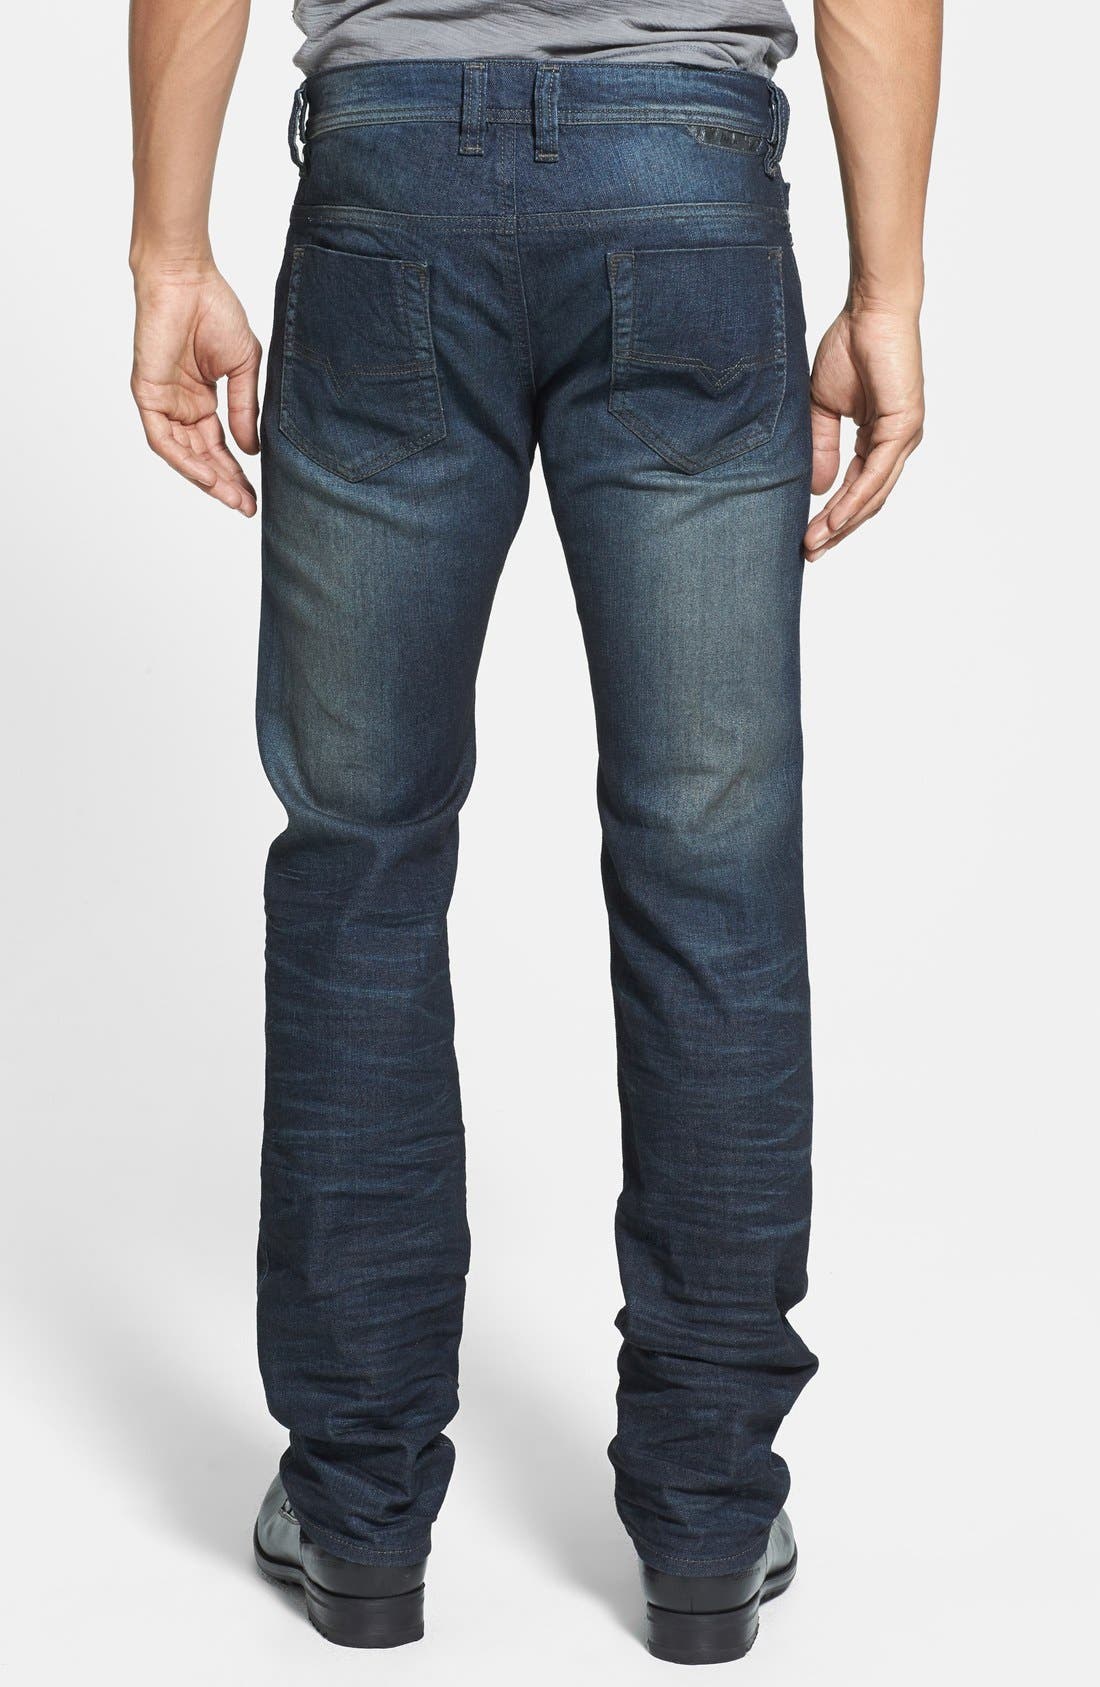 'Safado' Slim Fit Jeans,                             Alternate thumbnail 2, color,                             827K